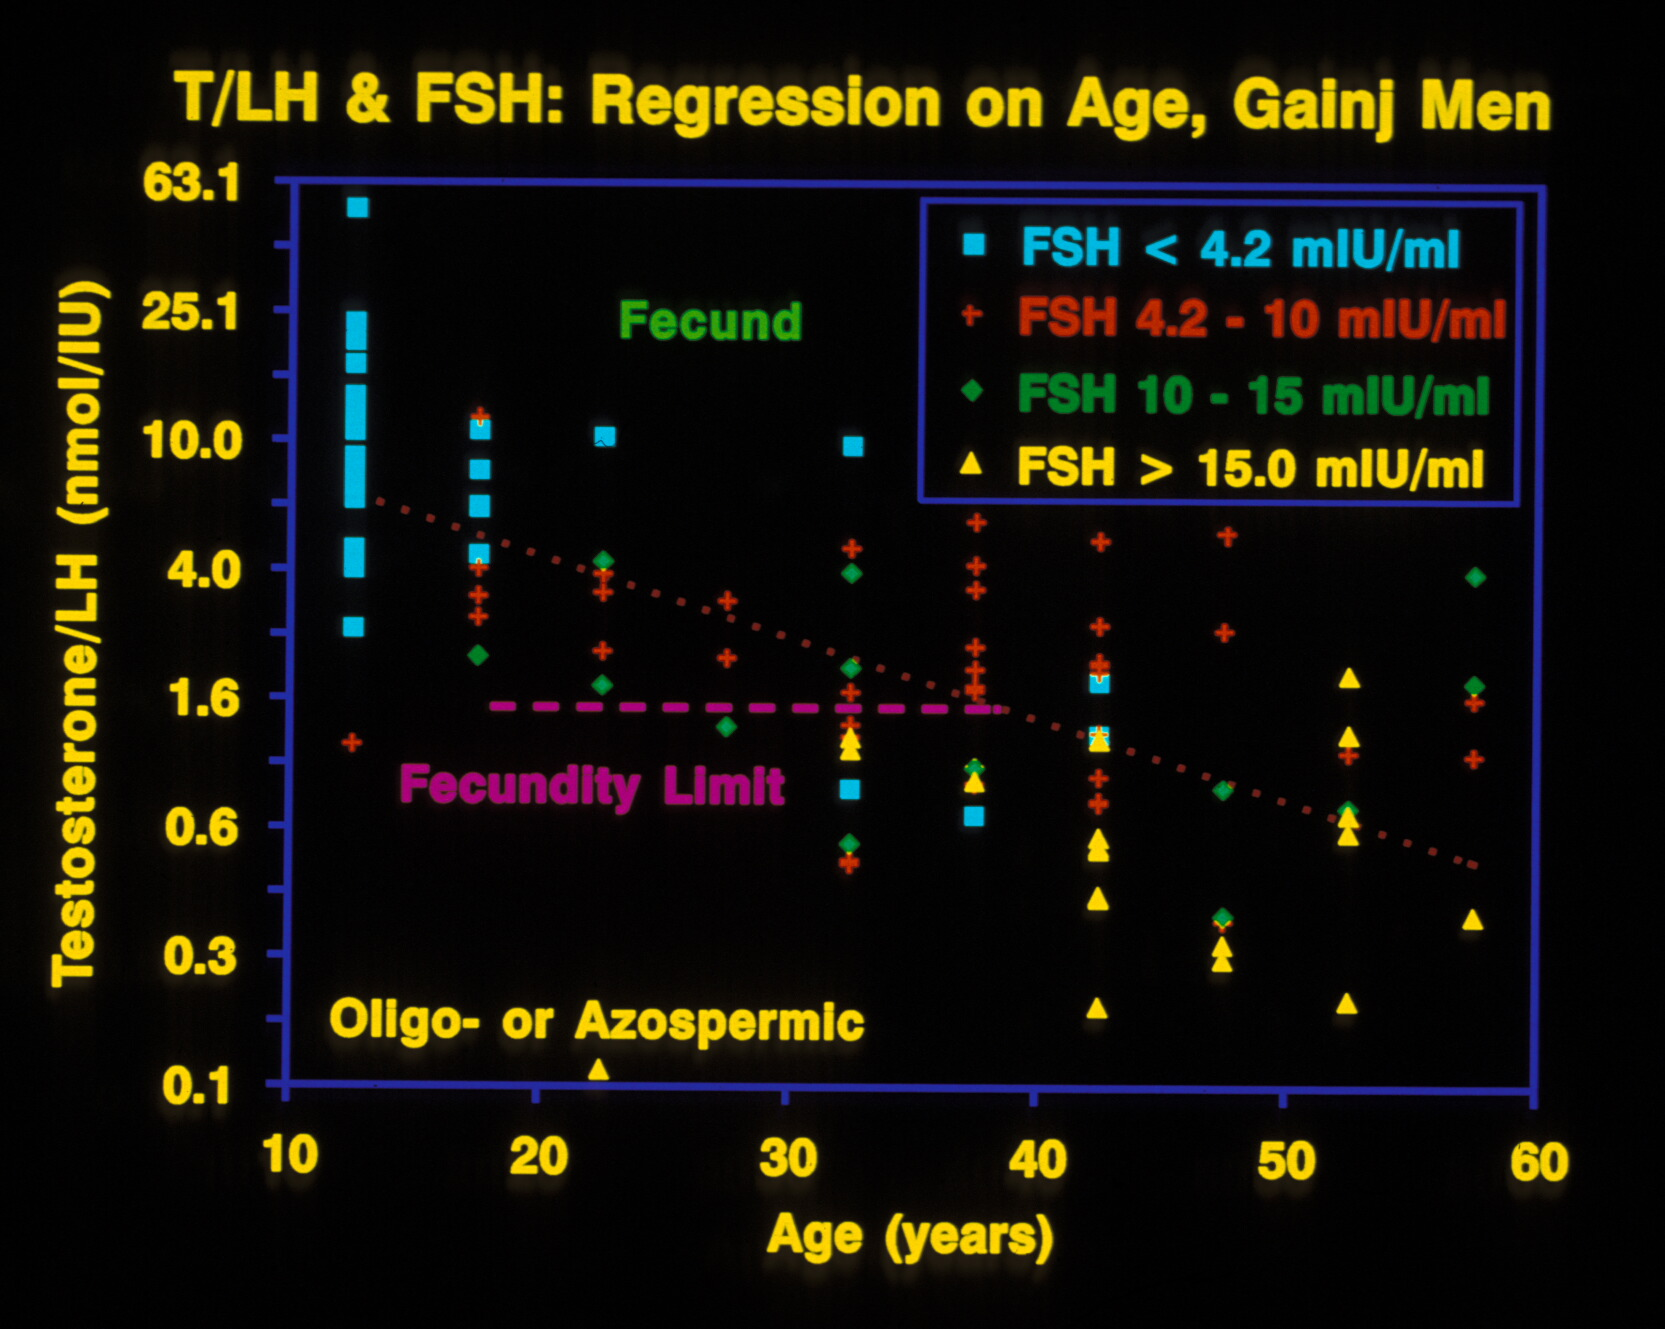 Ratio of testosterone to LH versus FSH in Gainj (a non-Westernized population in New Guinea) men.